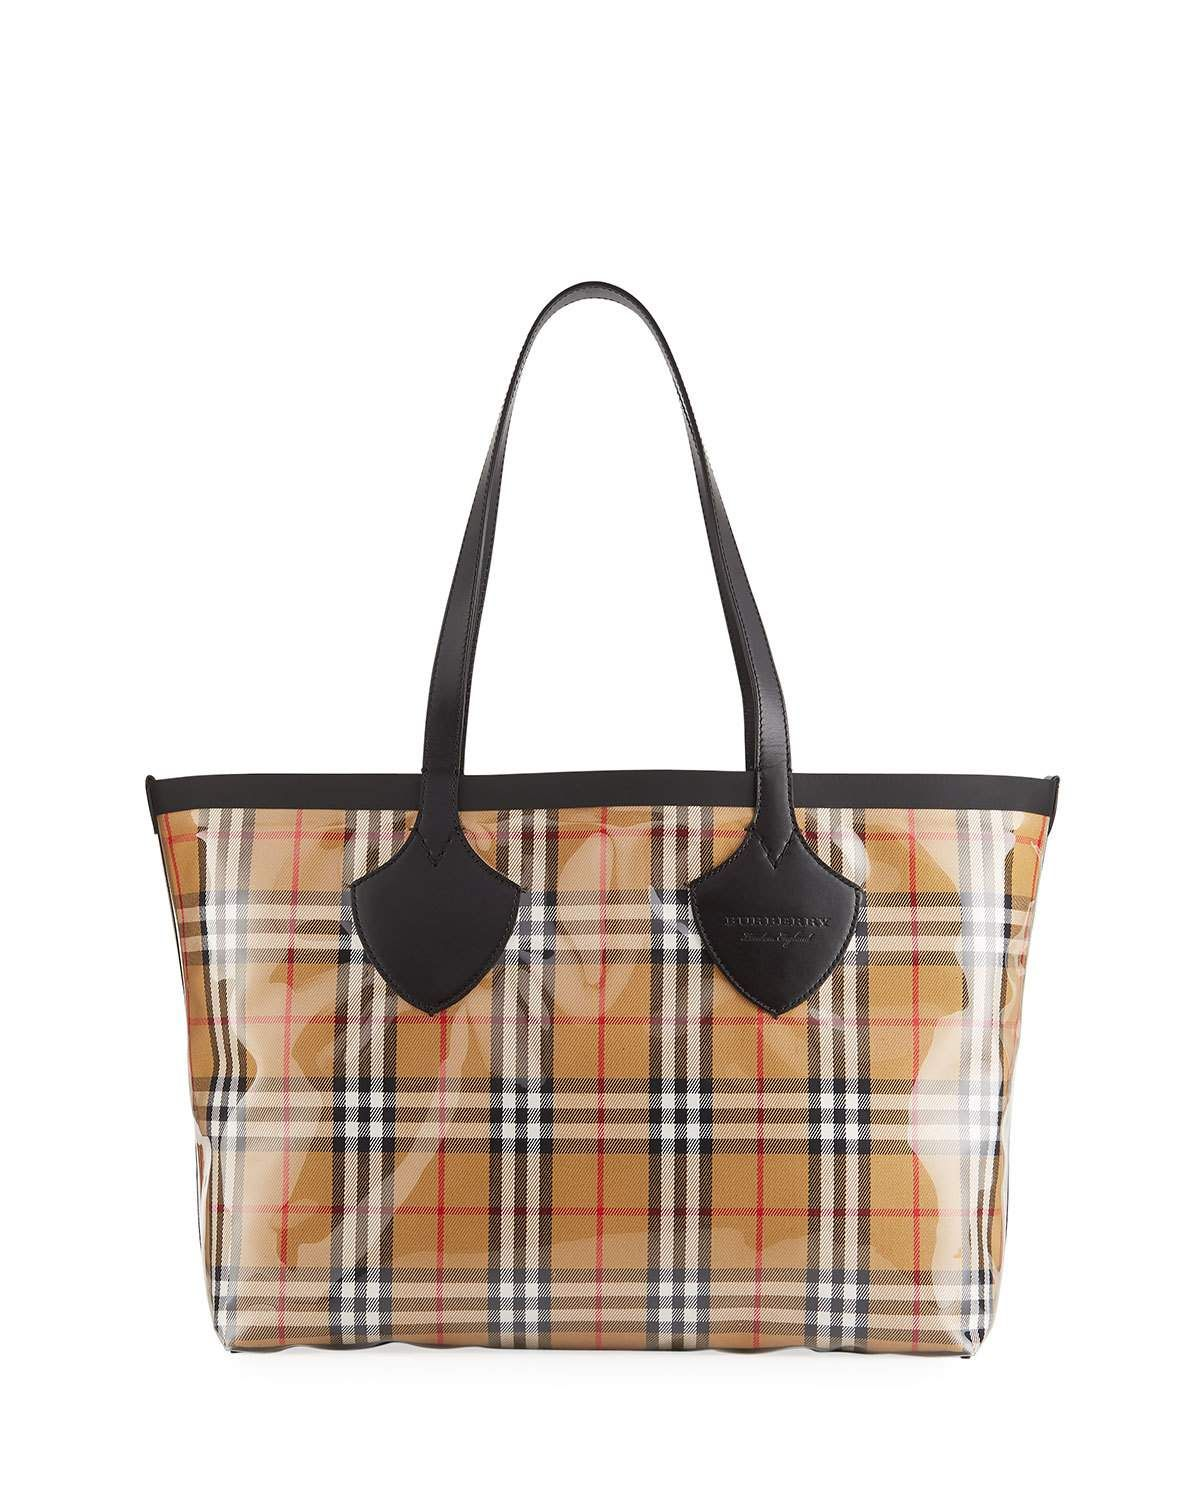 1087db870d0 Giant Transparent Vintage Check Tote Bag | Handbags in 2019 | Bags ...